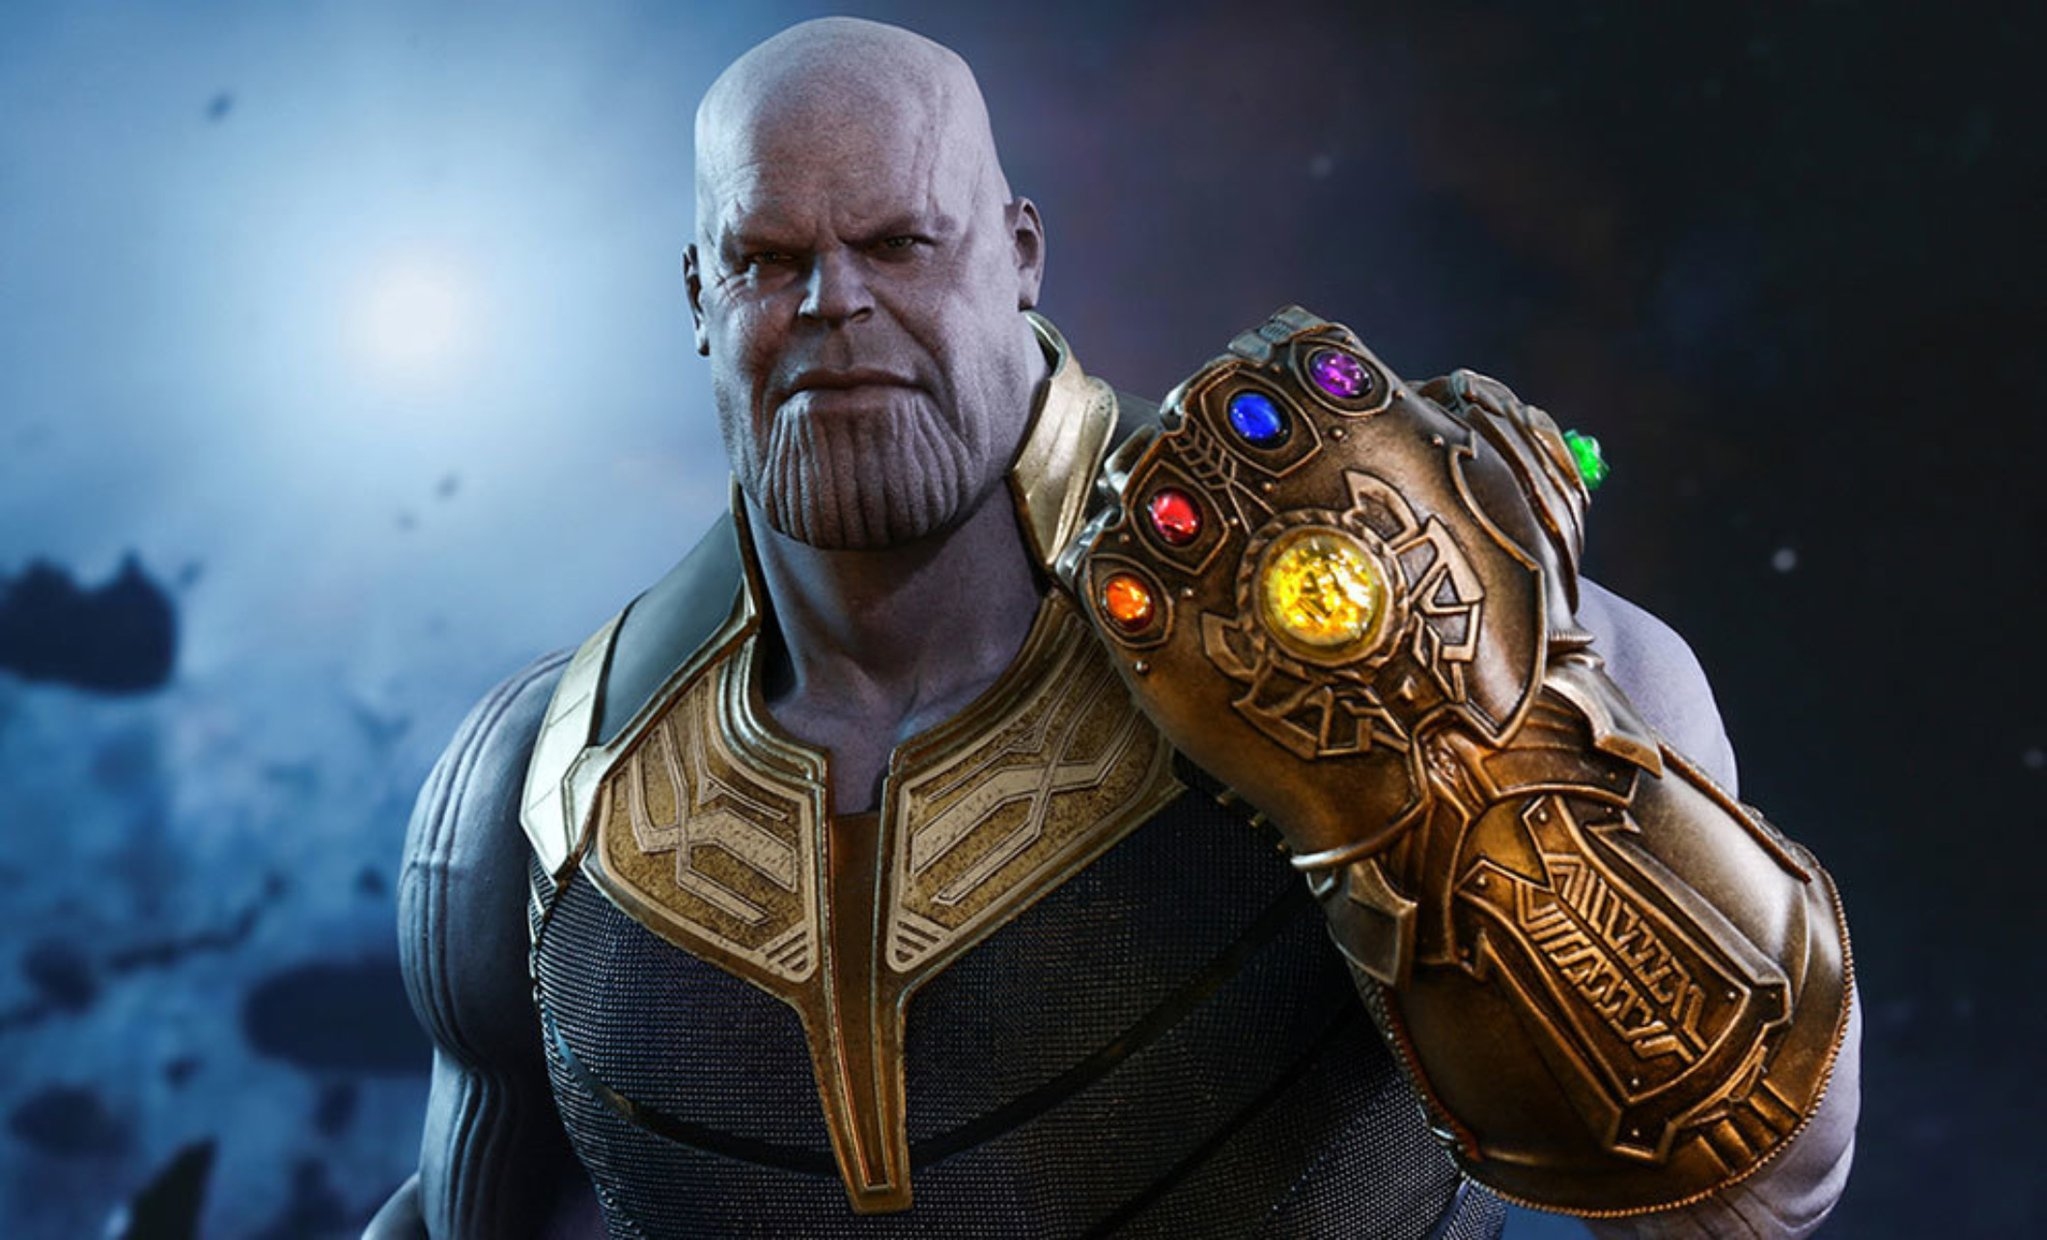 Avengers theory suggests Thanos wasn't the first to use Infinity Stones